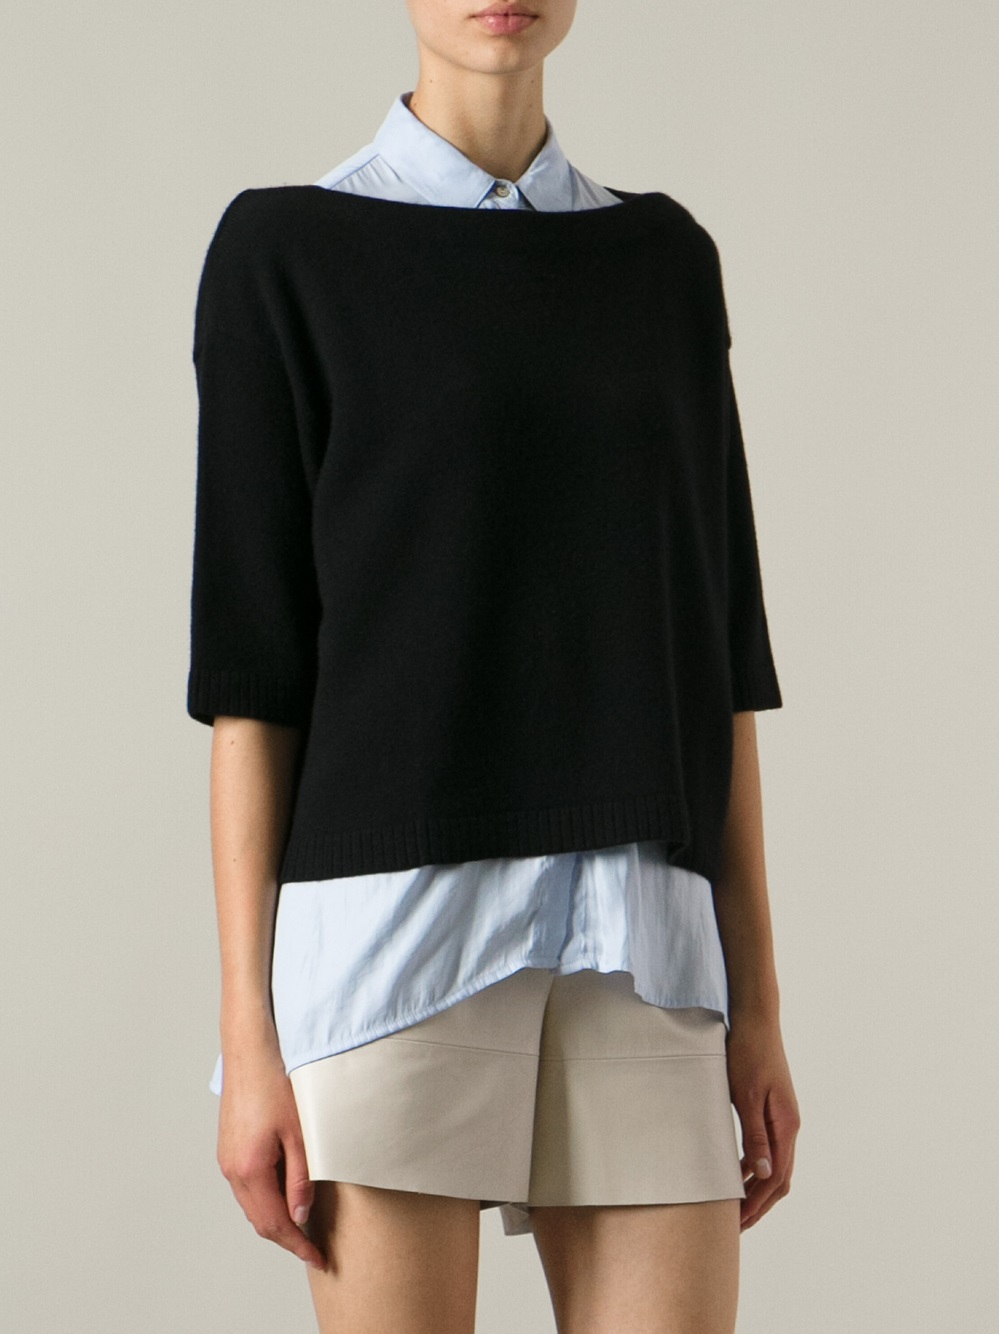 Valentino Cropped Boxy Sweater in Black | Lyst